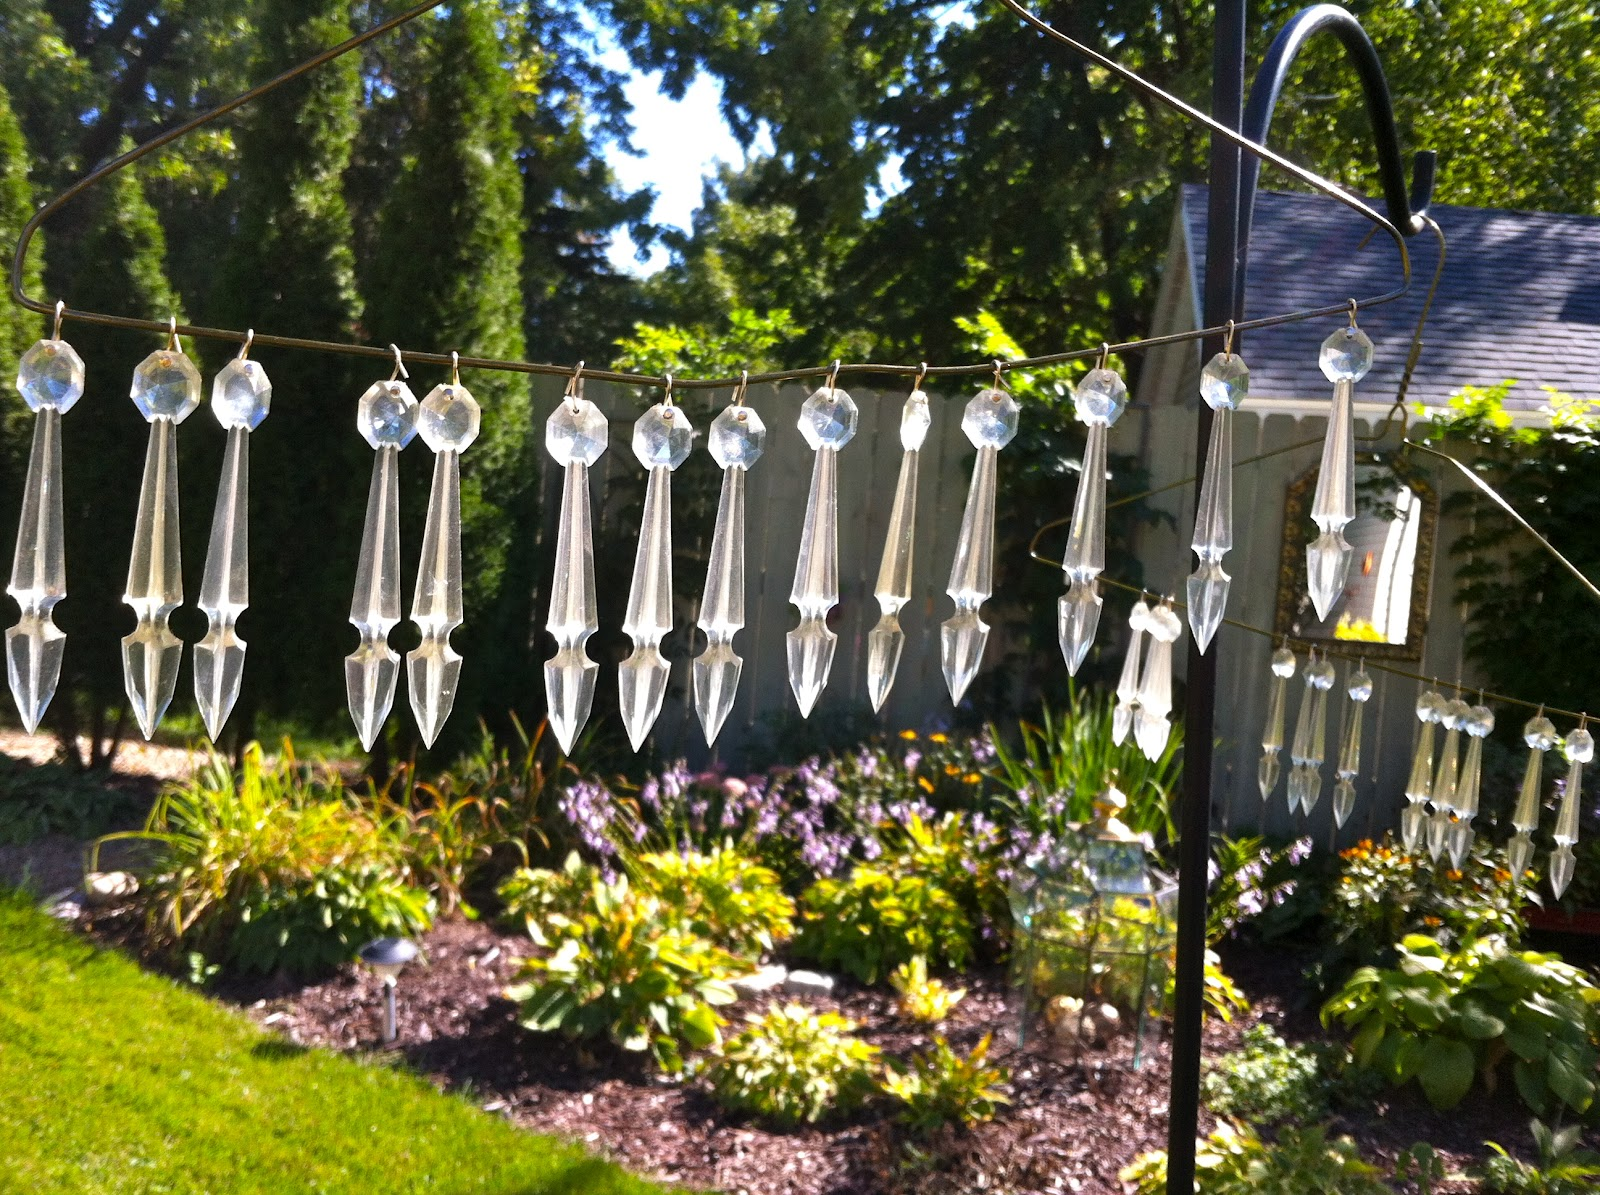 Our Garden Path Hanging Chandelier From Wire Baskets